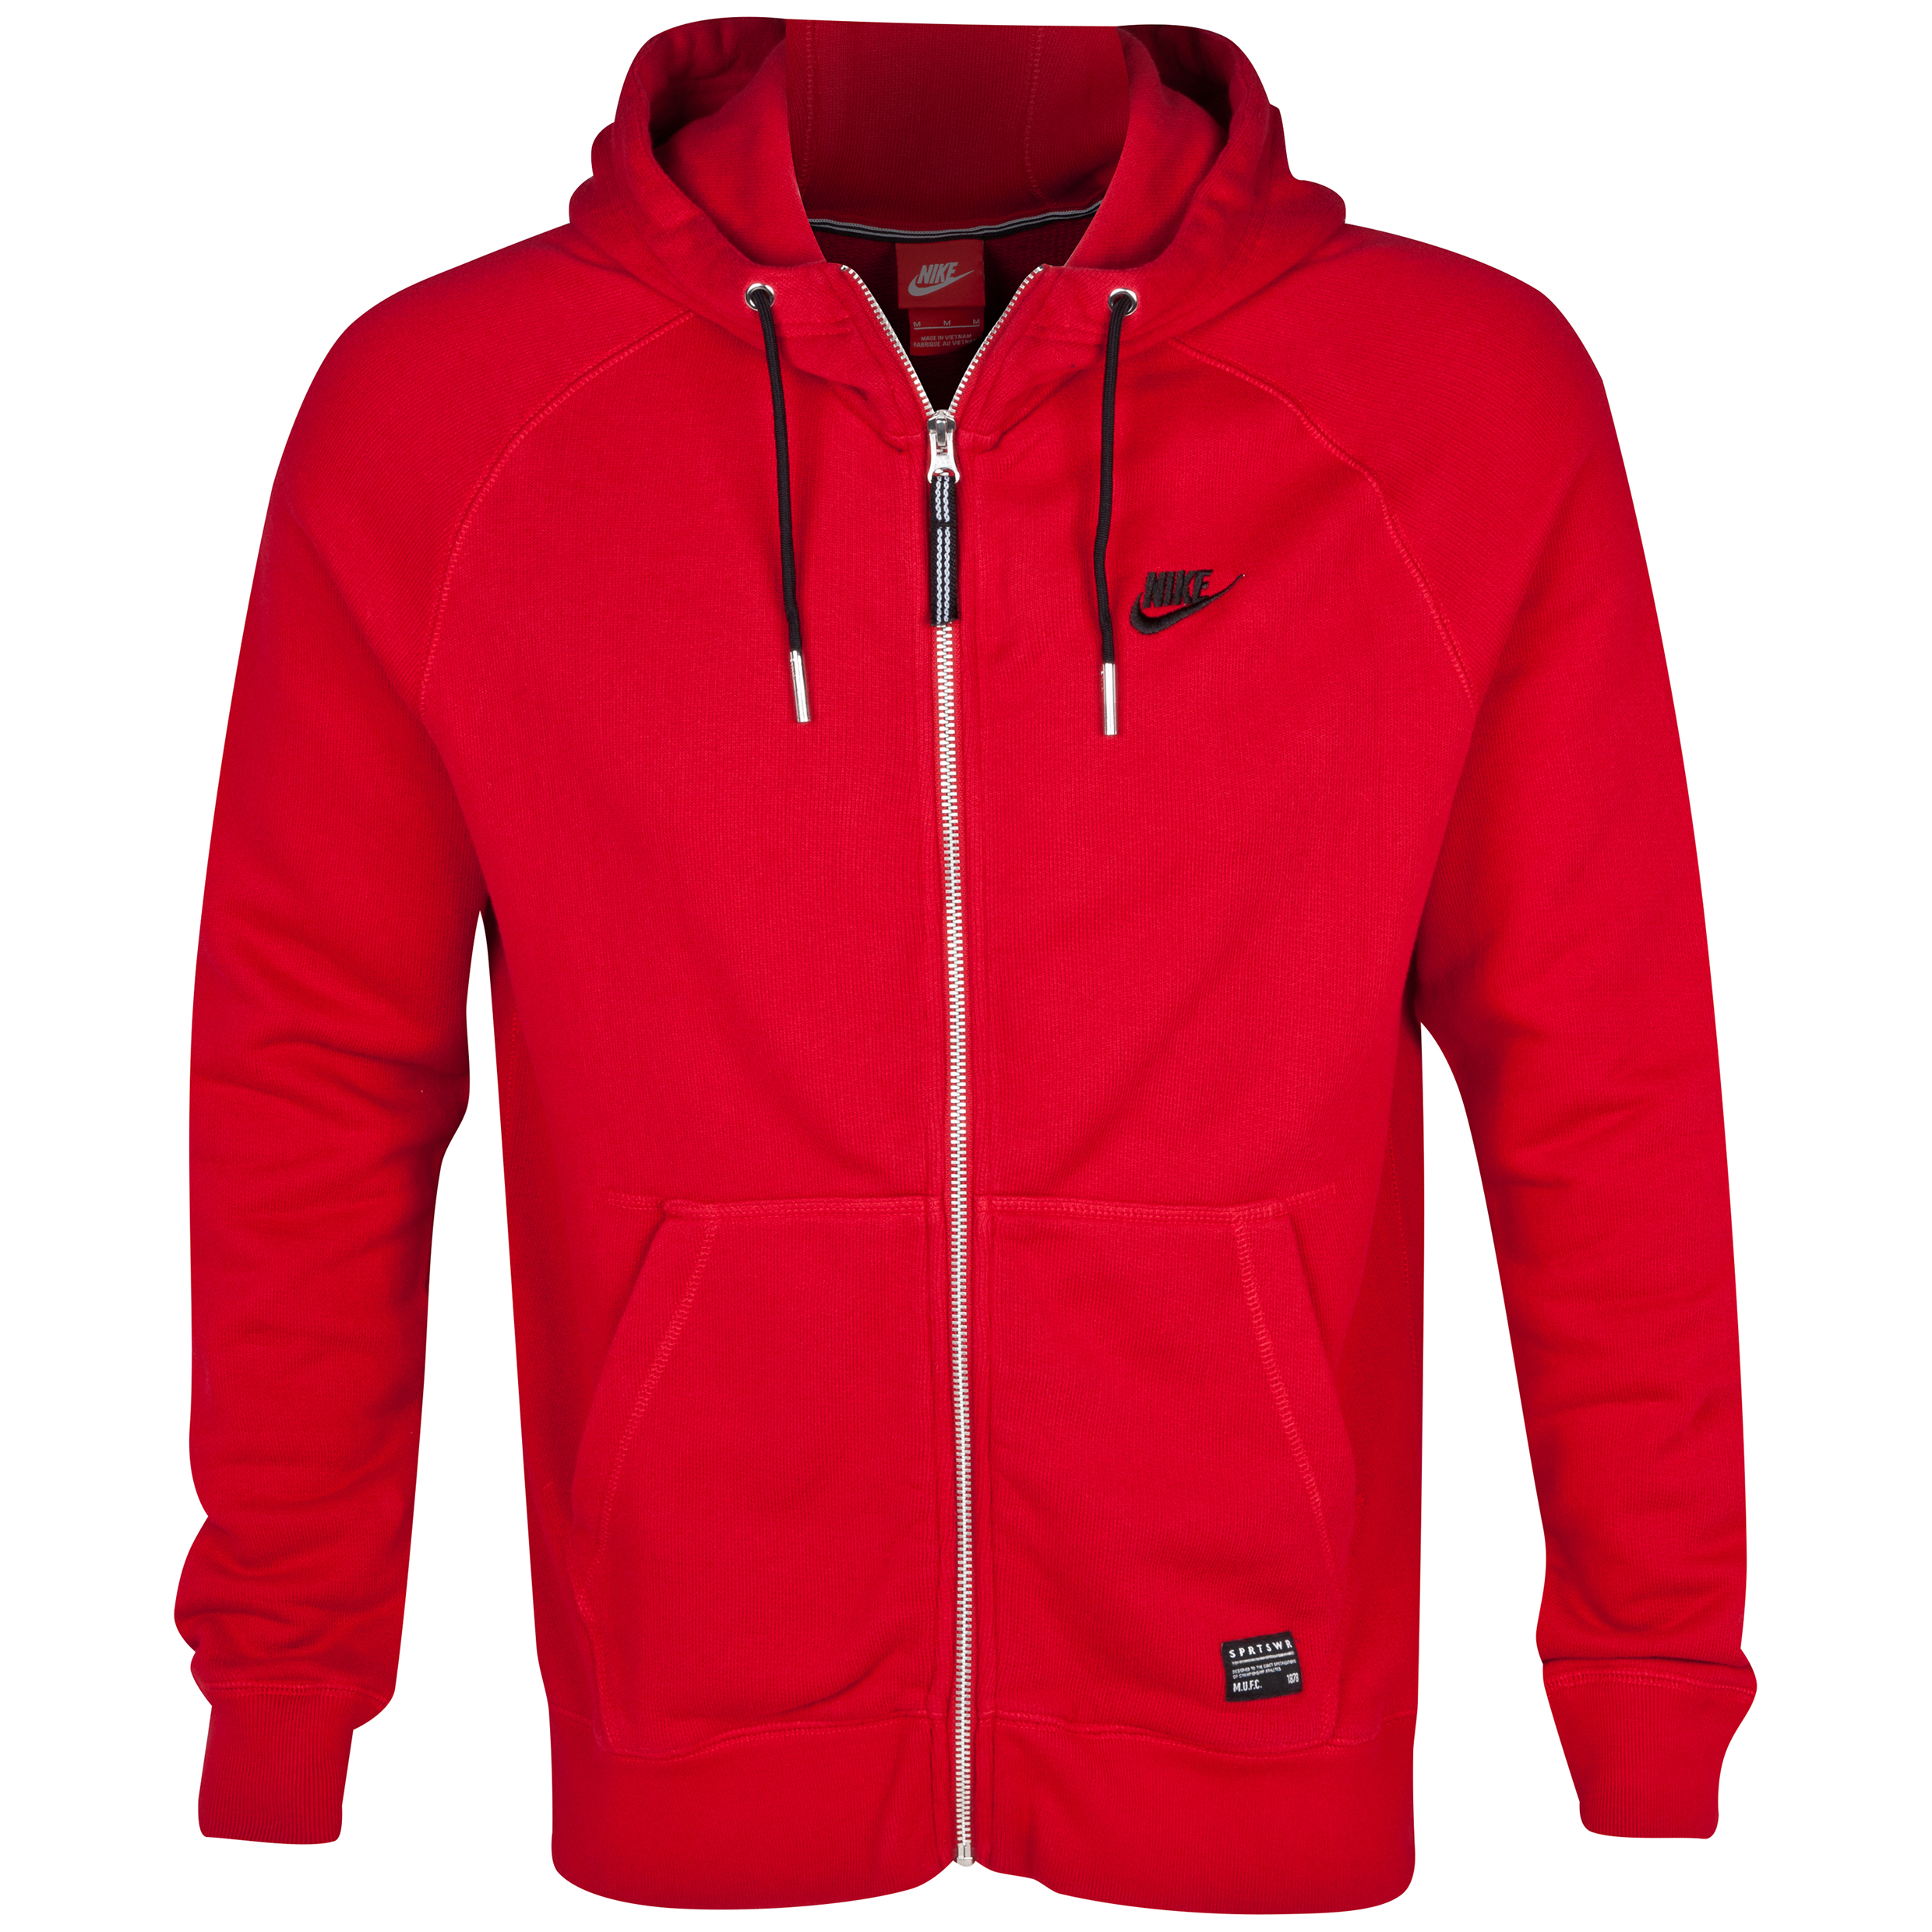 Manchester United Covert AW77 Full Zip Hoody - Gym Red/Black Red